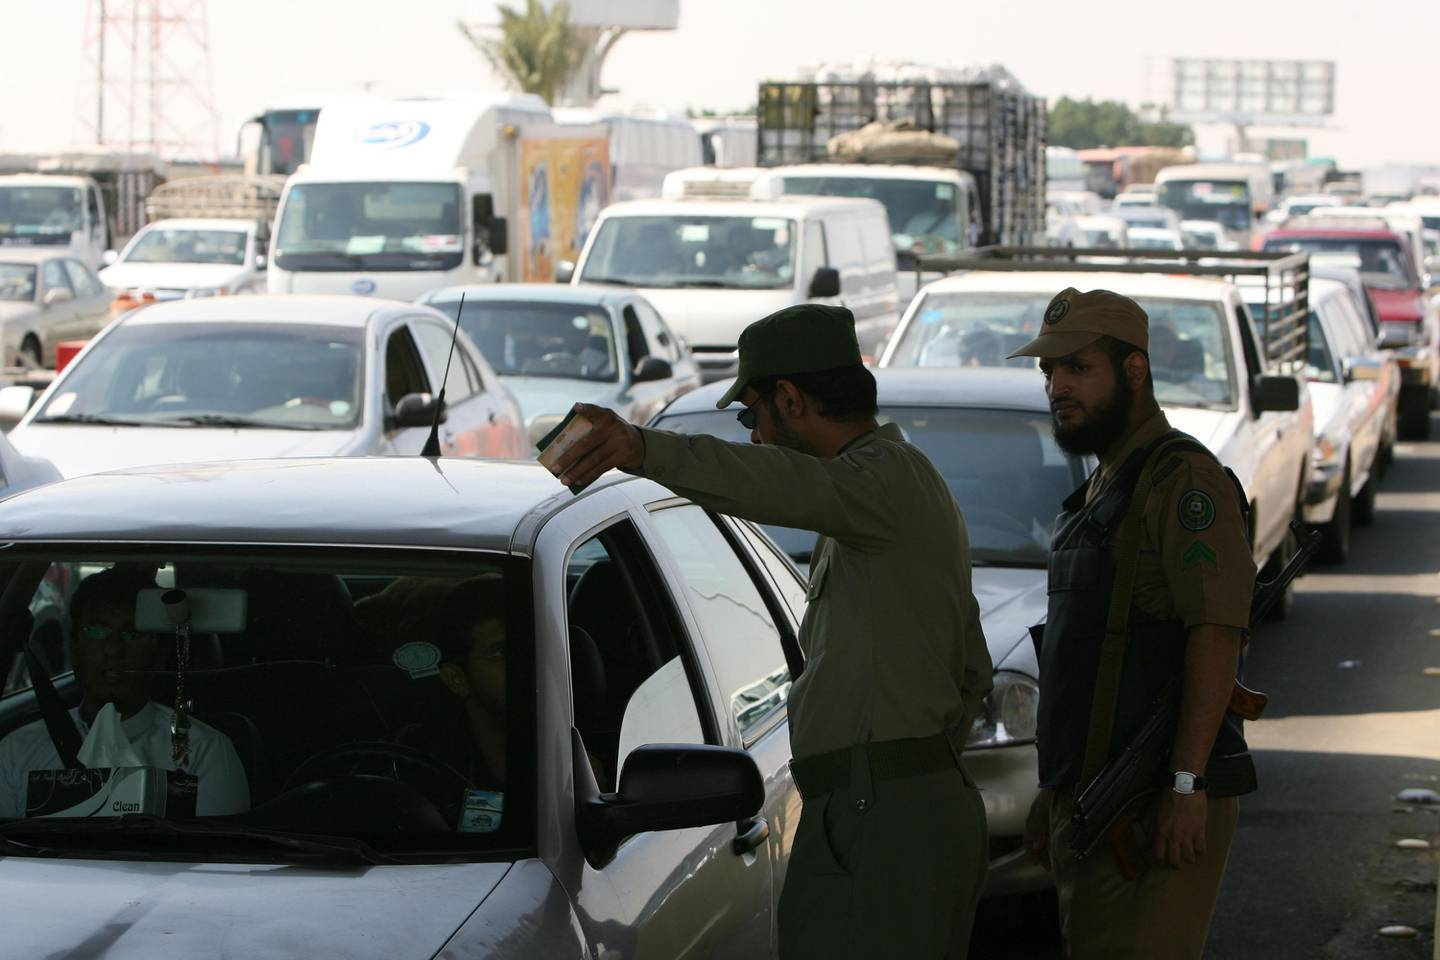 Saudi police check for identities and special Hajj permittions and visas as Saudi authorities is stopping any unauthorized for Hajj to get into Makkah, at the Shumais checkpoint few kilometers out of Makkah, Saudi Arabia on December 04, 2008. (Salah Malkawi/ The National)